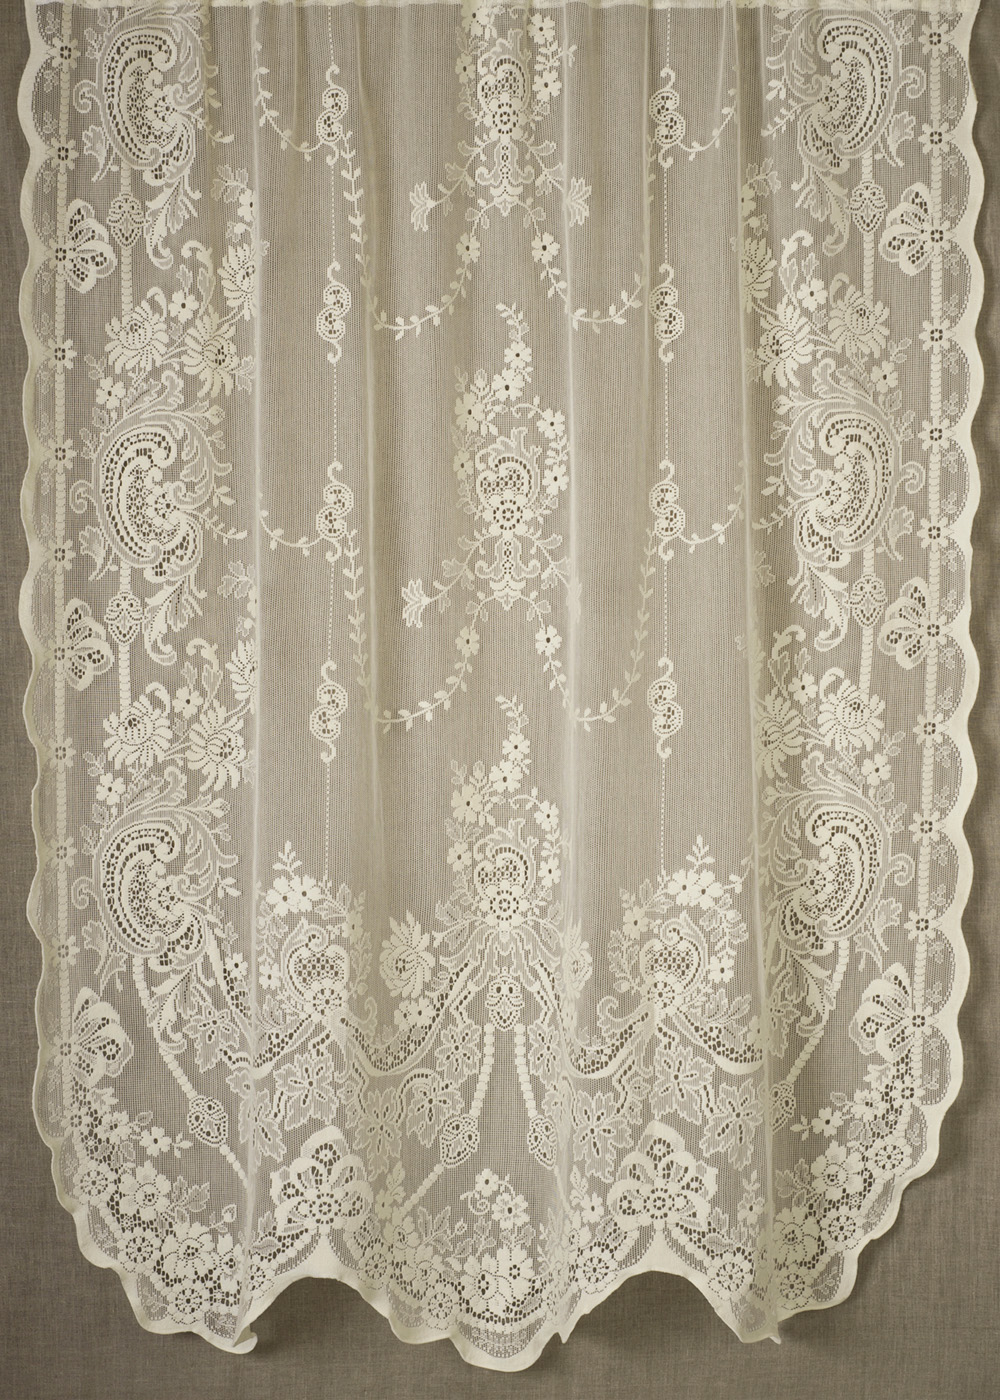 French Lace Curtains London Lace Curtains Specializing In The Finest Scottish And